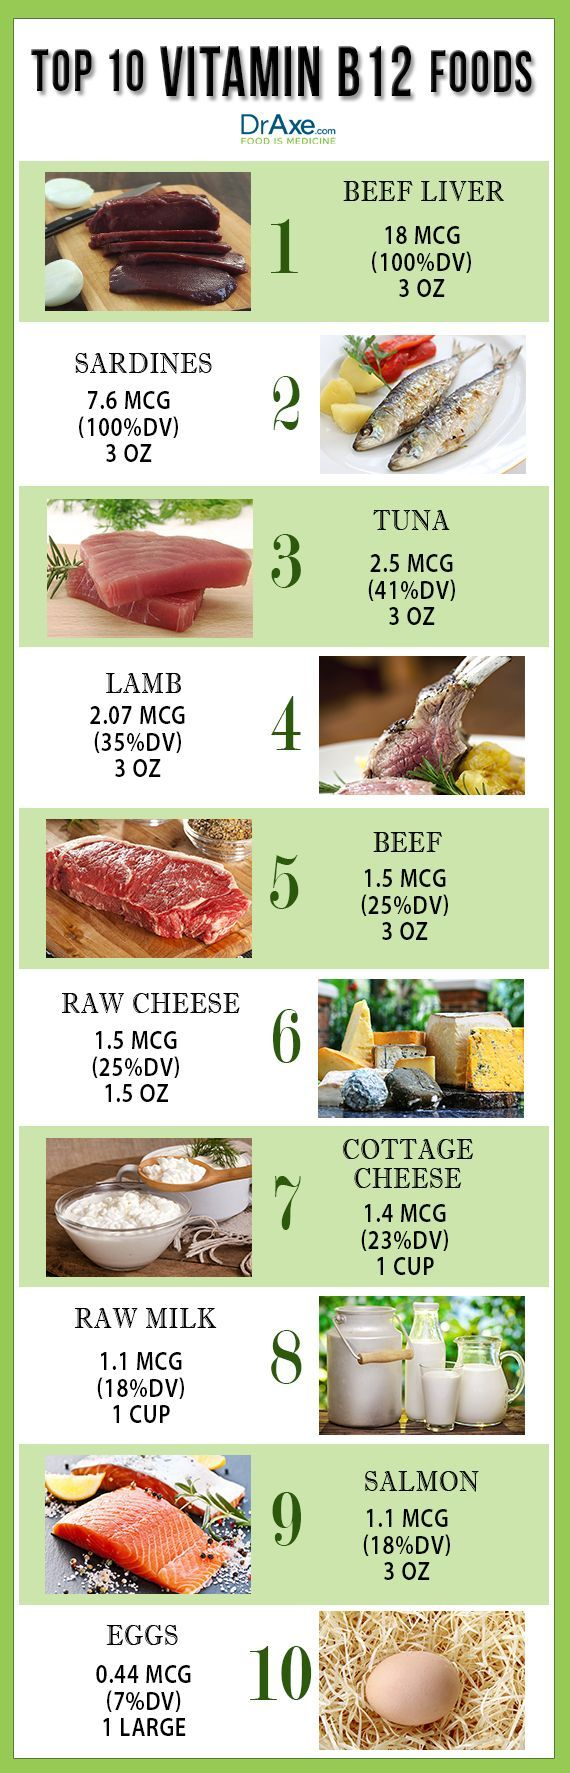 Vitamin B12 List draxe.com/ #health #holistic #natural